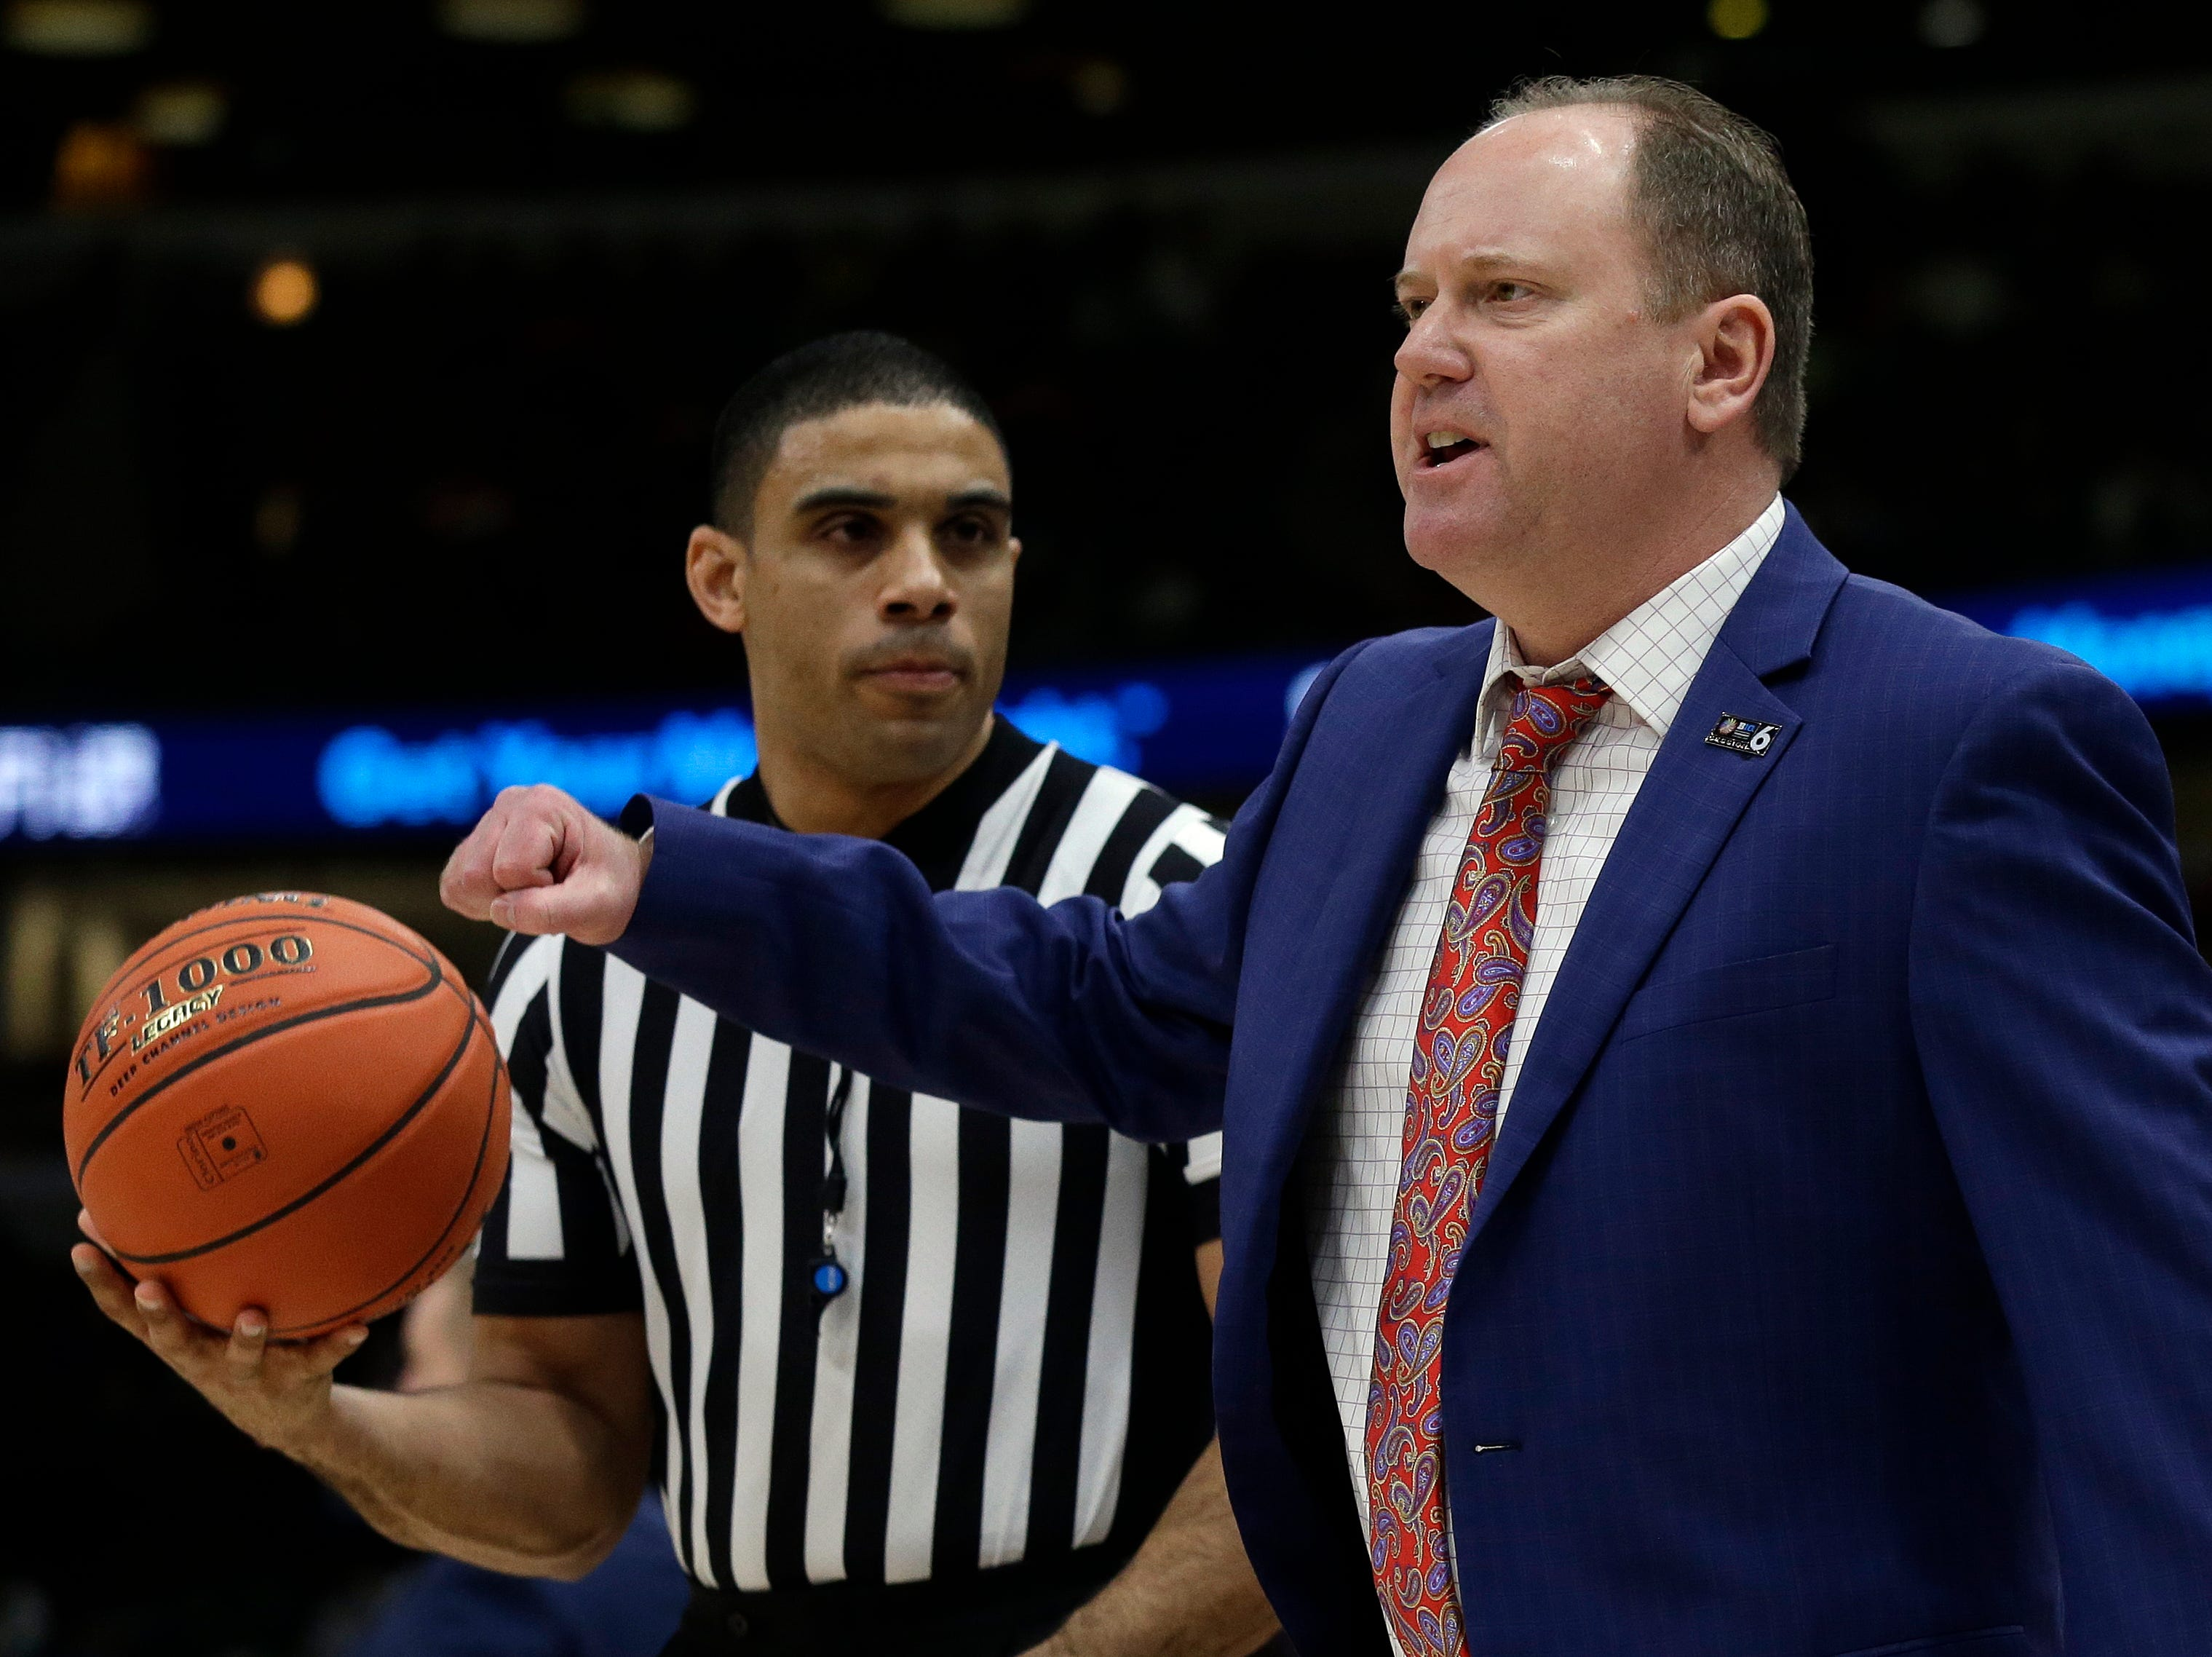 Wisconsin head coach Greg Gard argues a call during the first half of an NCAA college basketball game against Michigan State in the semifinals of the Big Ten Conference tournament, Saturday, March 16, 2019, in Chicago.